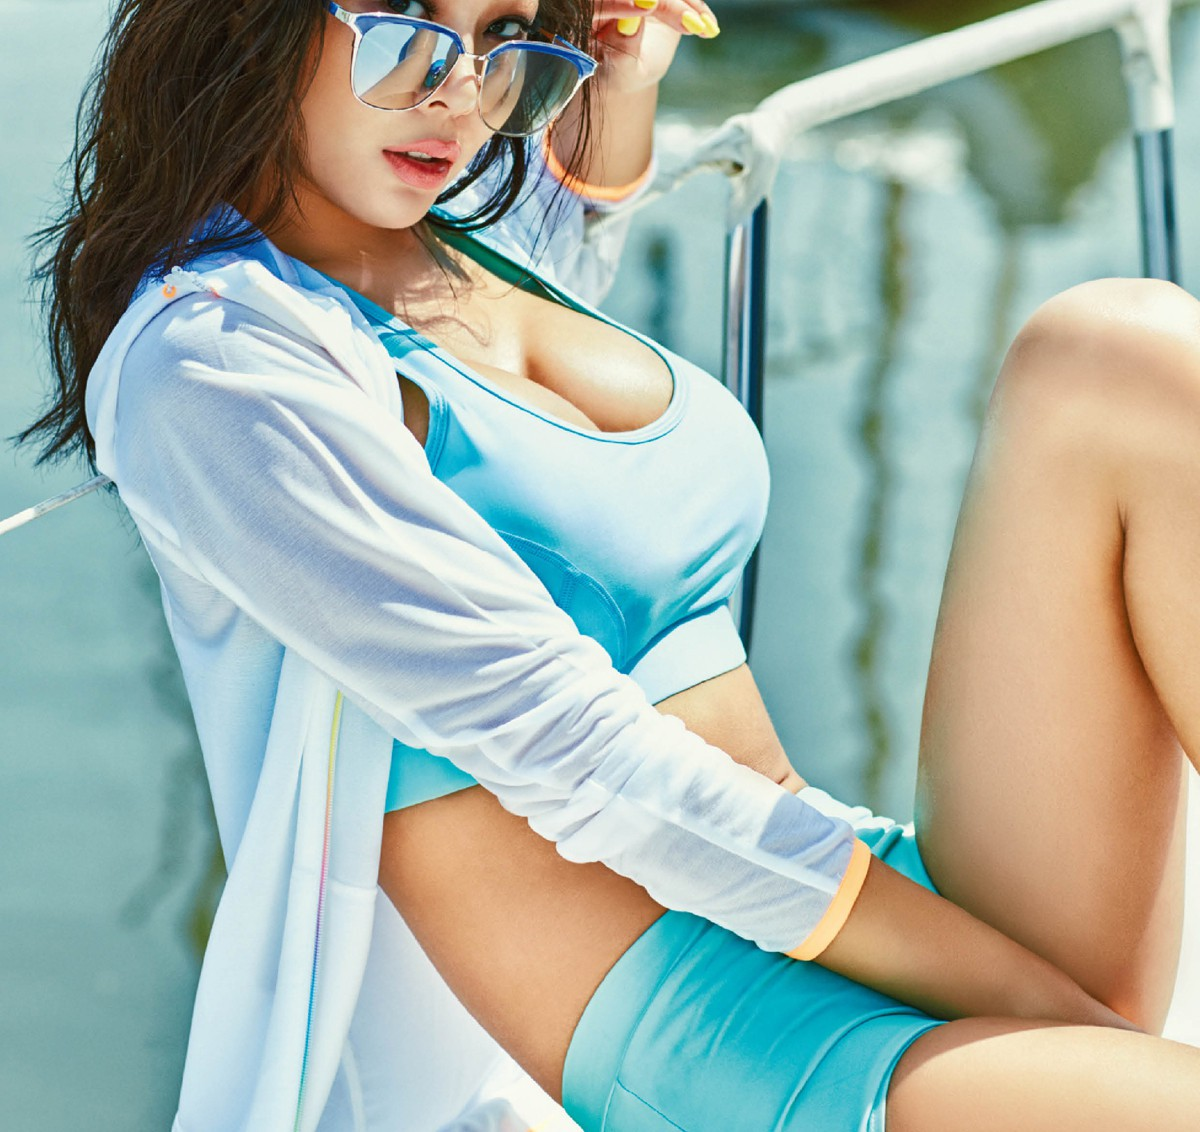 bergman asian singles Bergman's best 100% free singles dating site meet thousands of singles in bergman with mingle2's free personal ads and chat rooms our network of single men and women in bergman is the perfect place to make friends or find a boyfriend or girlfriend in bergman.